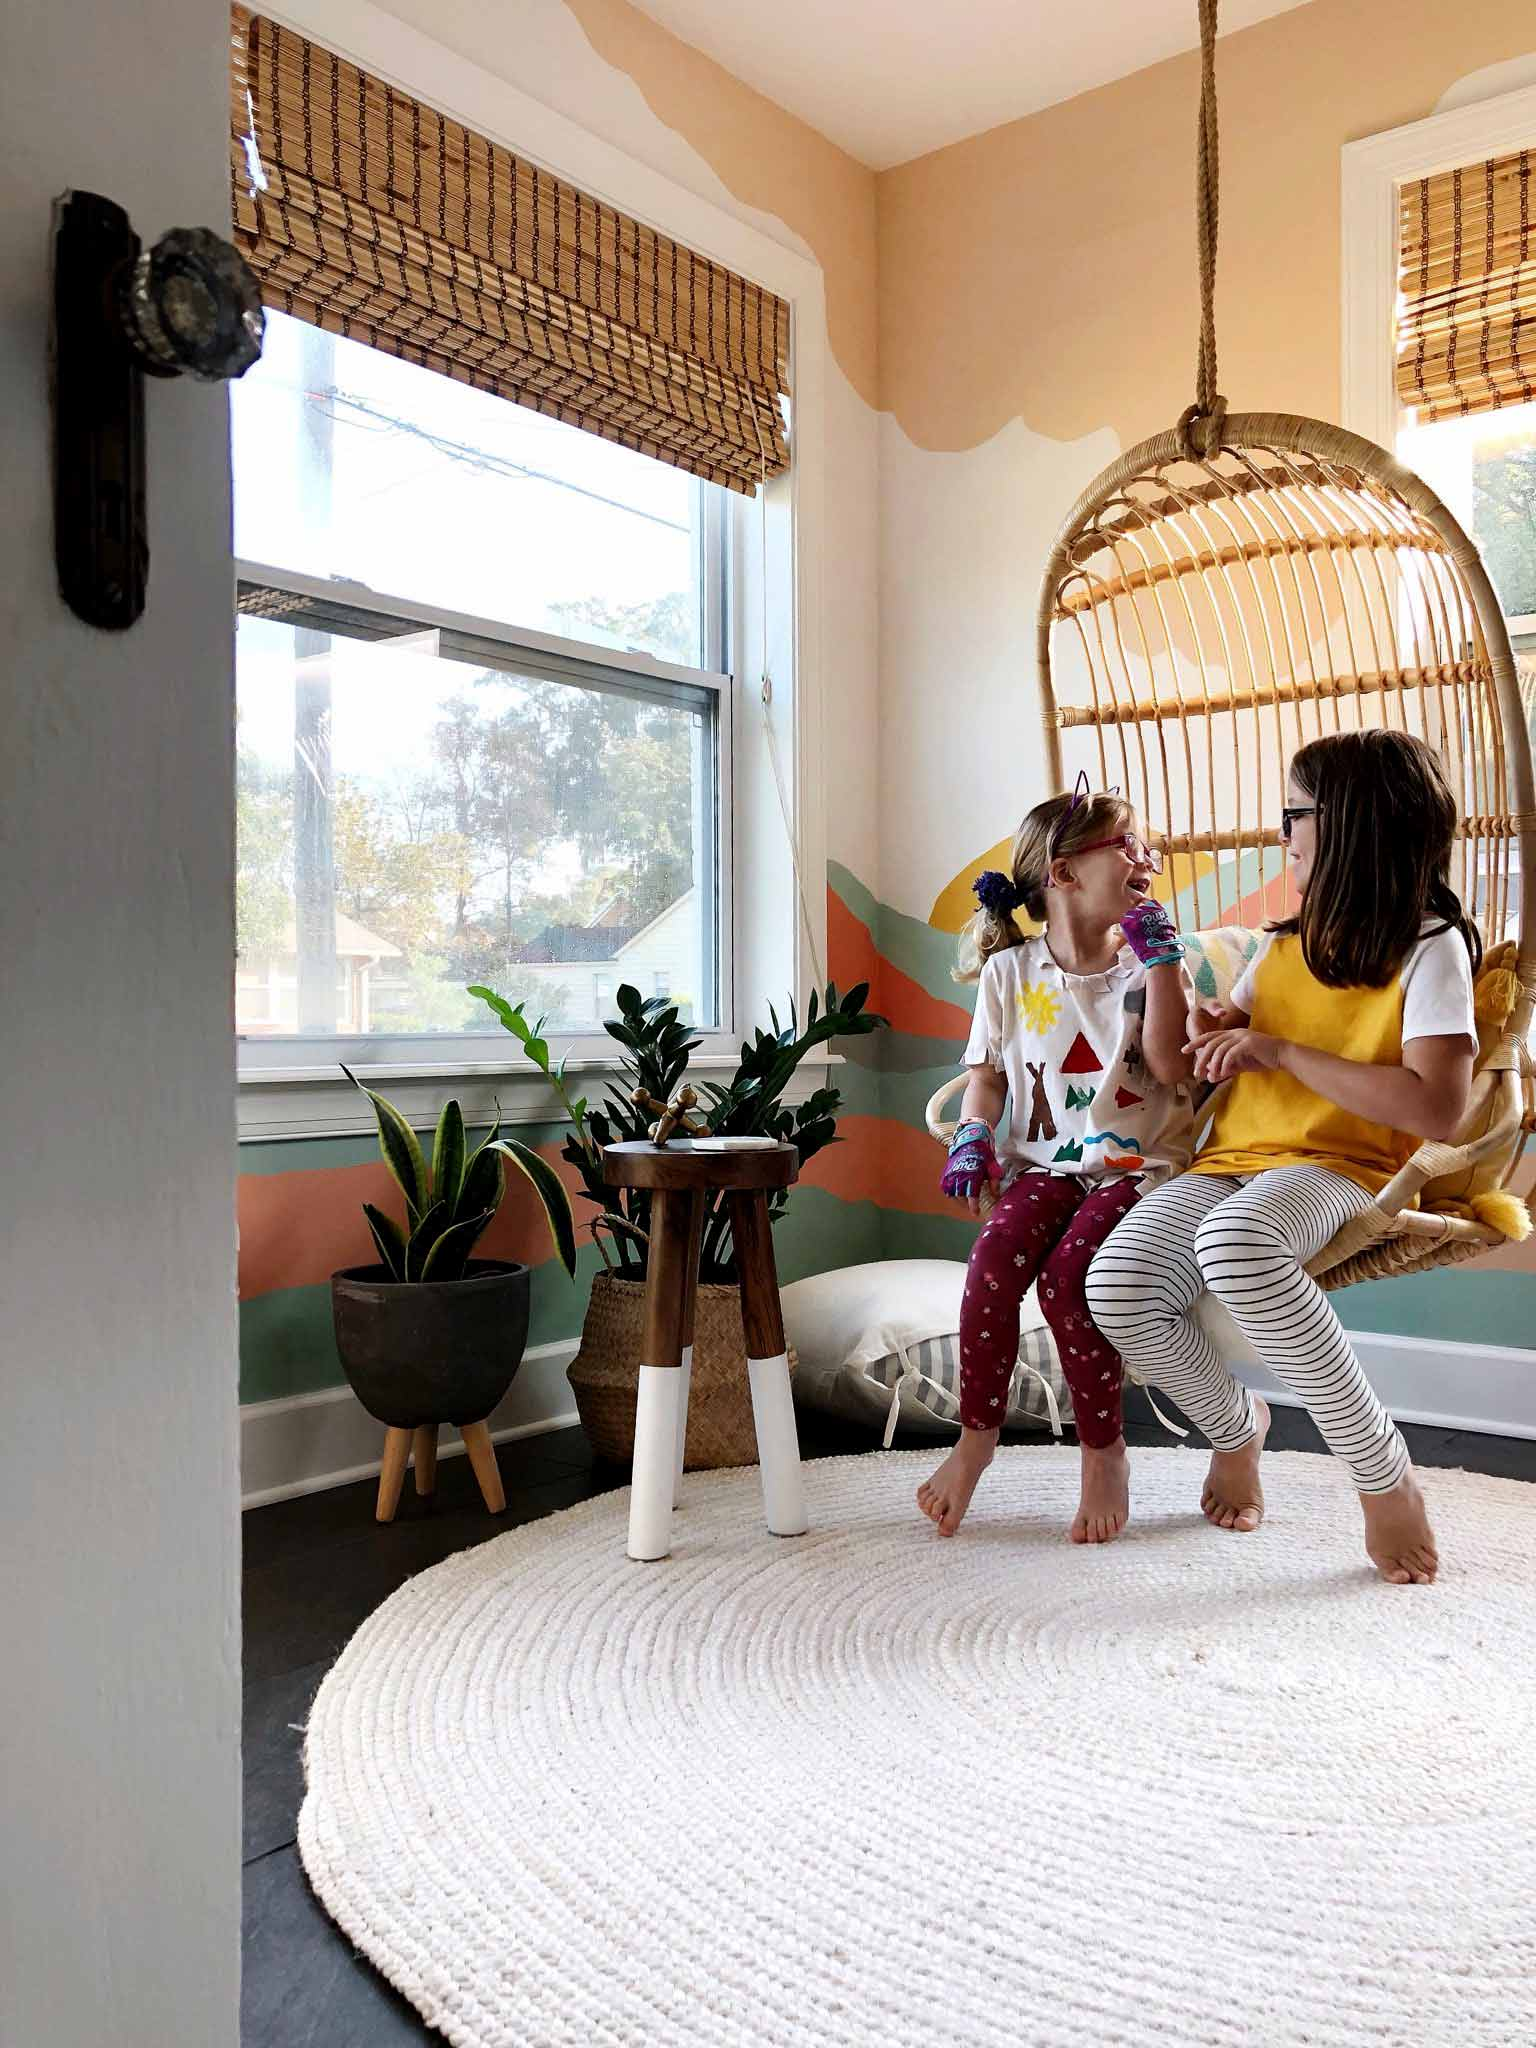 playroom with colorful mural and two girls in hanging chair